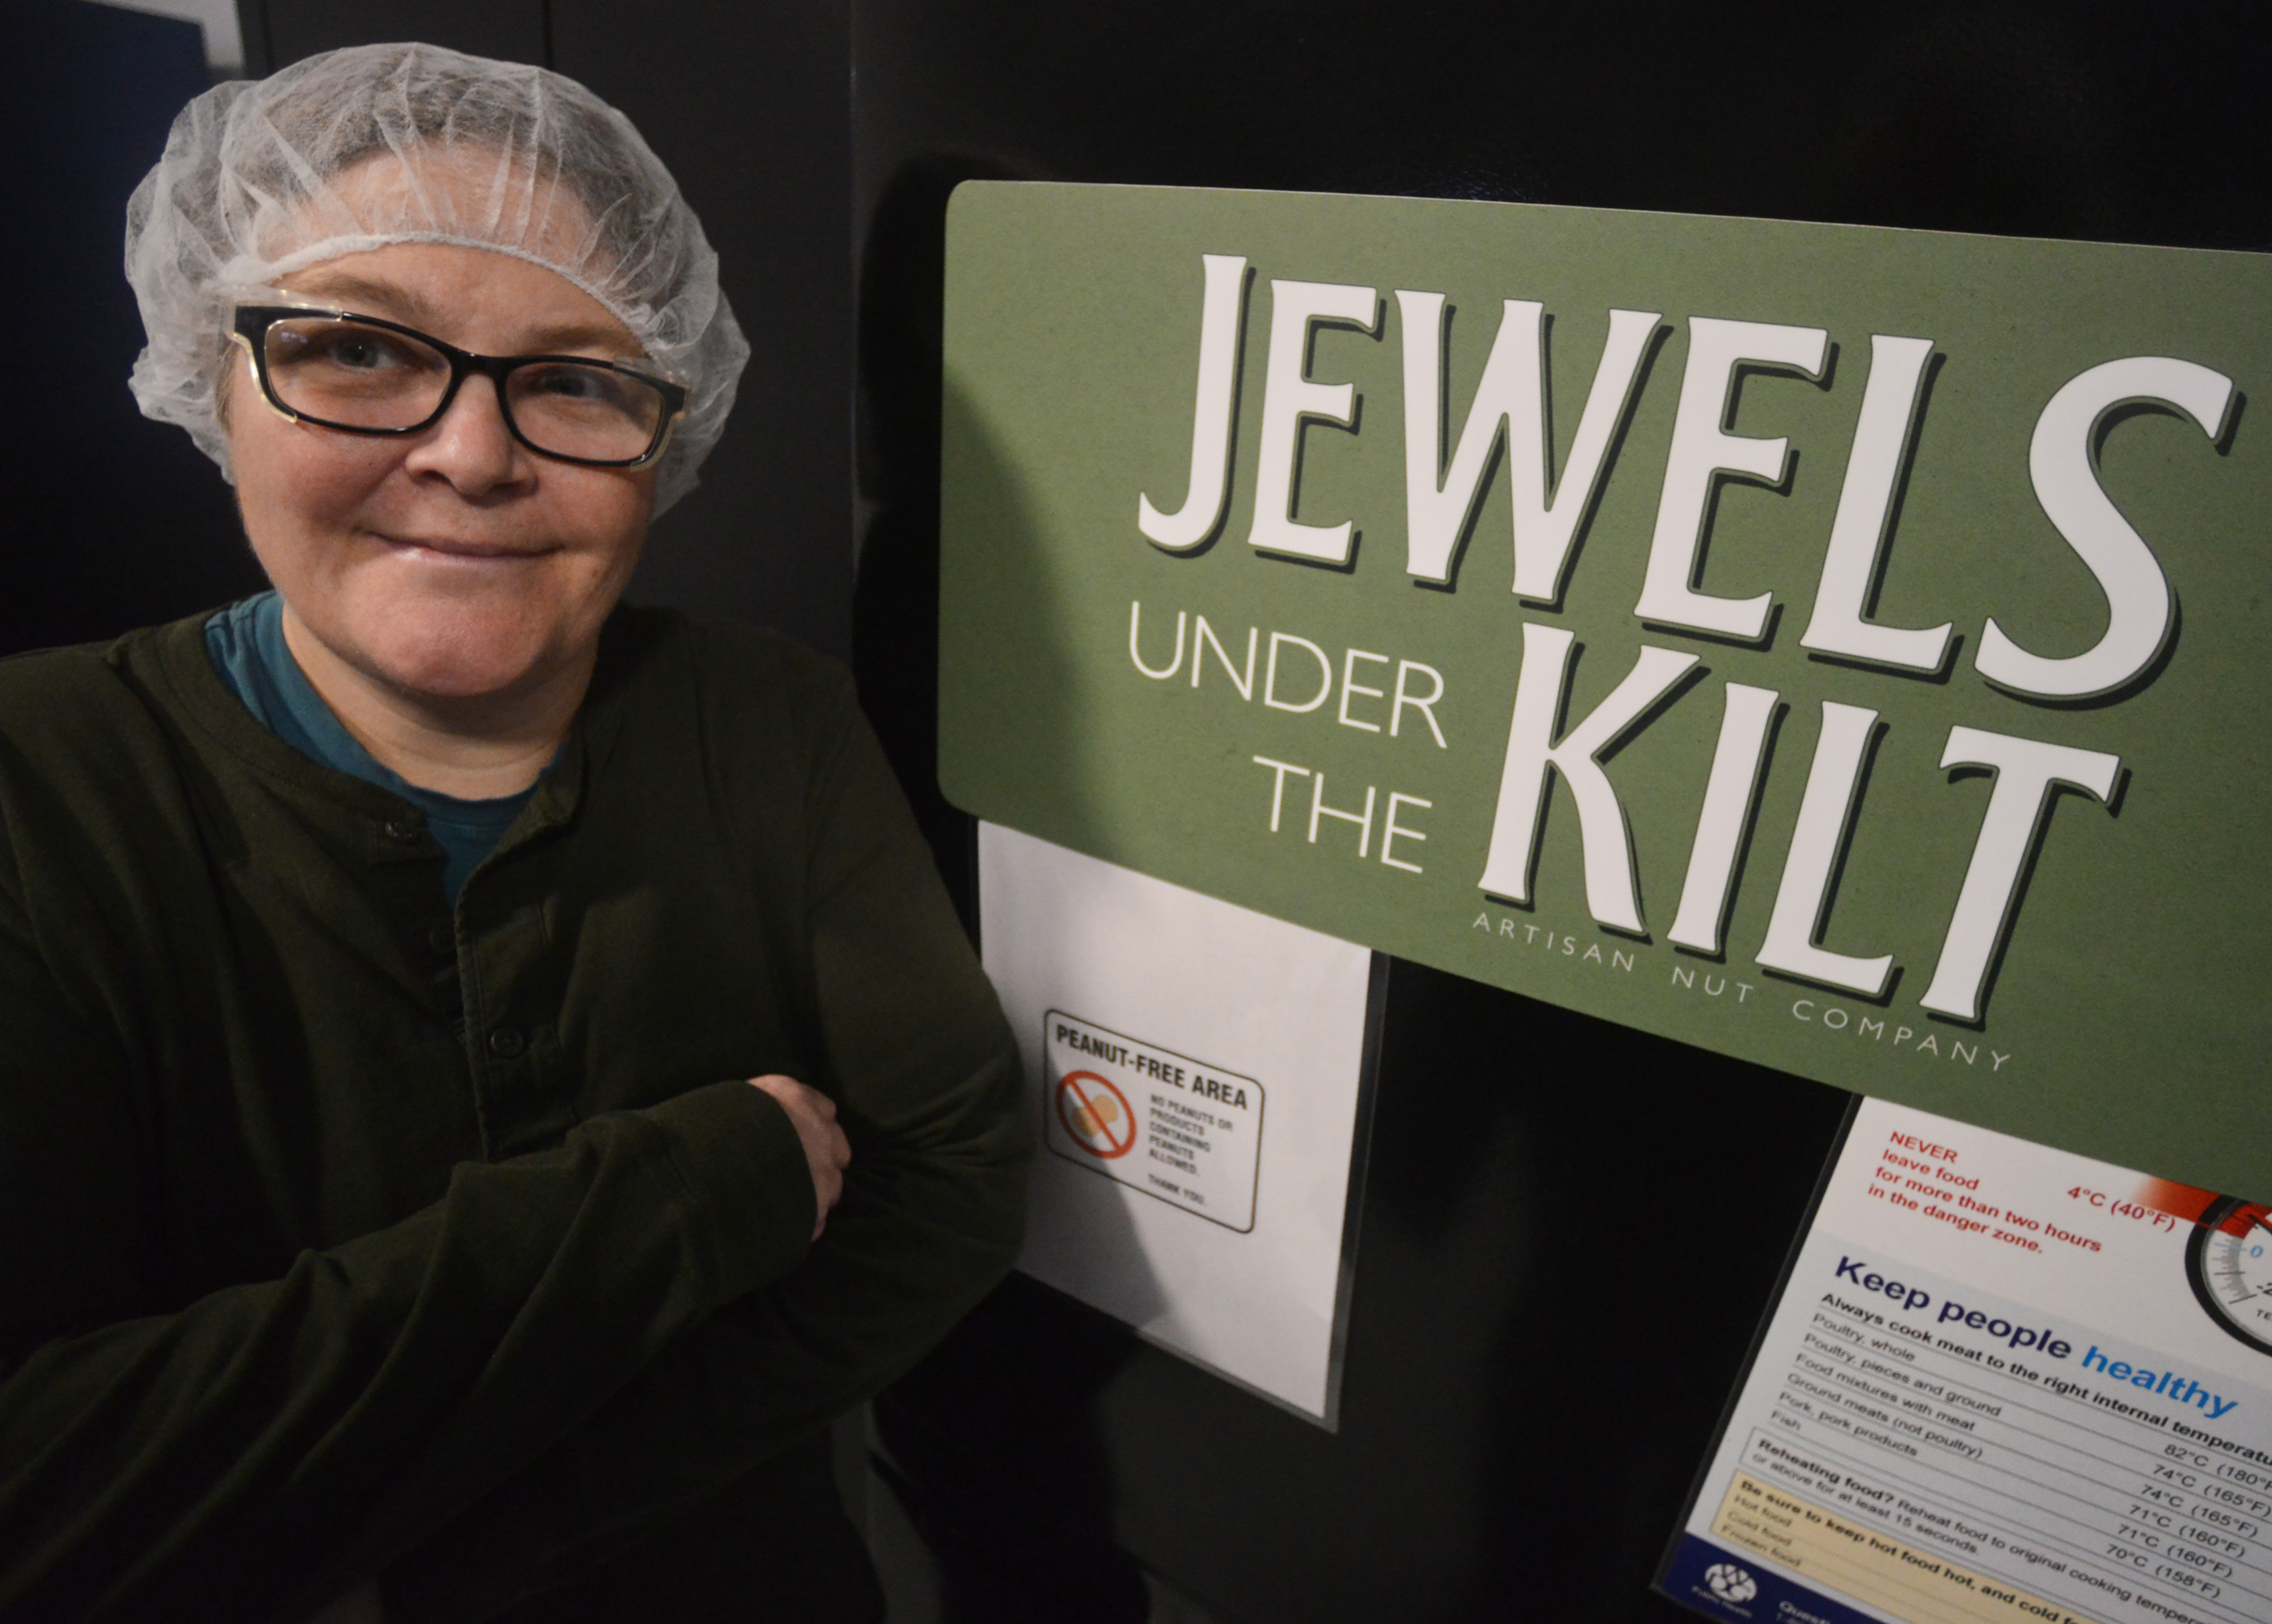 Jewels Under The Kilt: a cheeky name behind a nutty success story